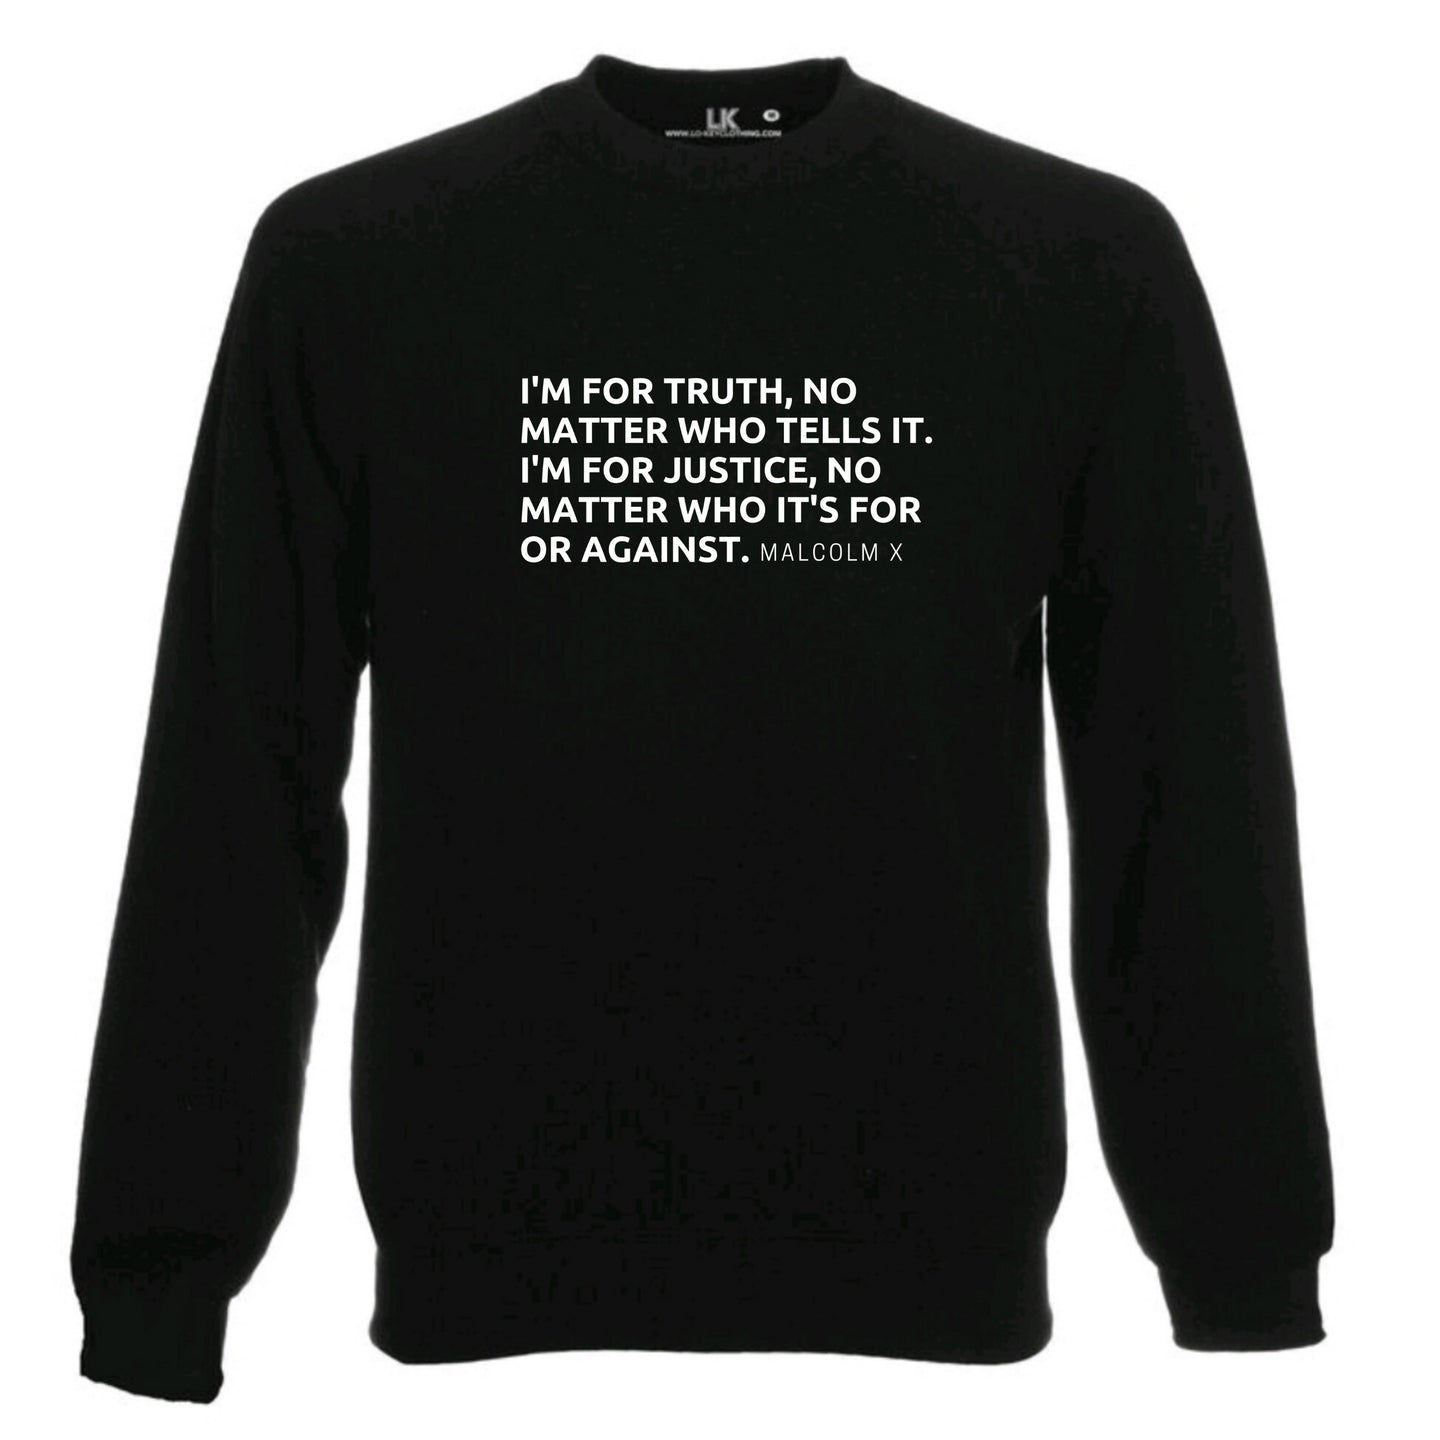 Malcolm X Truth & Justice sweatshirt ladies mens